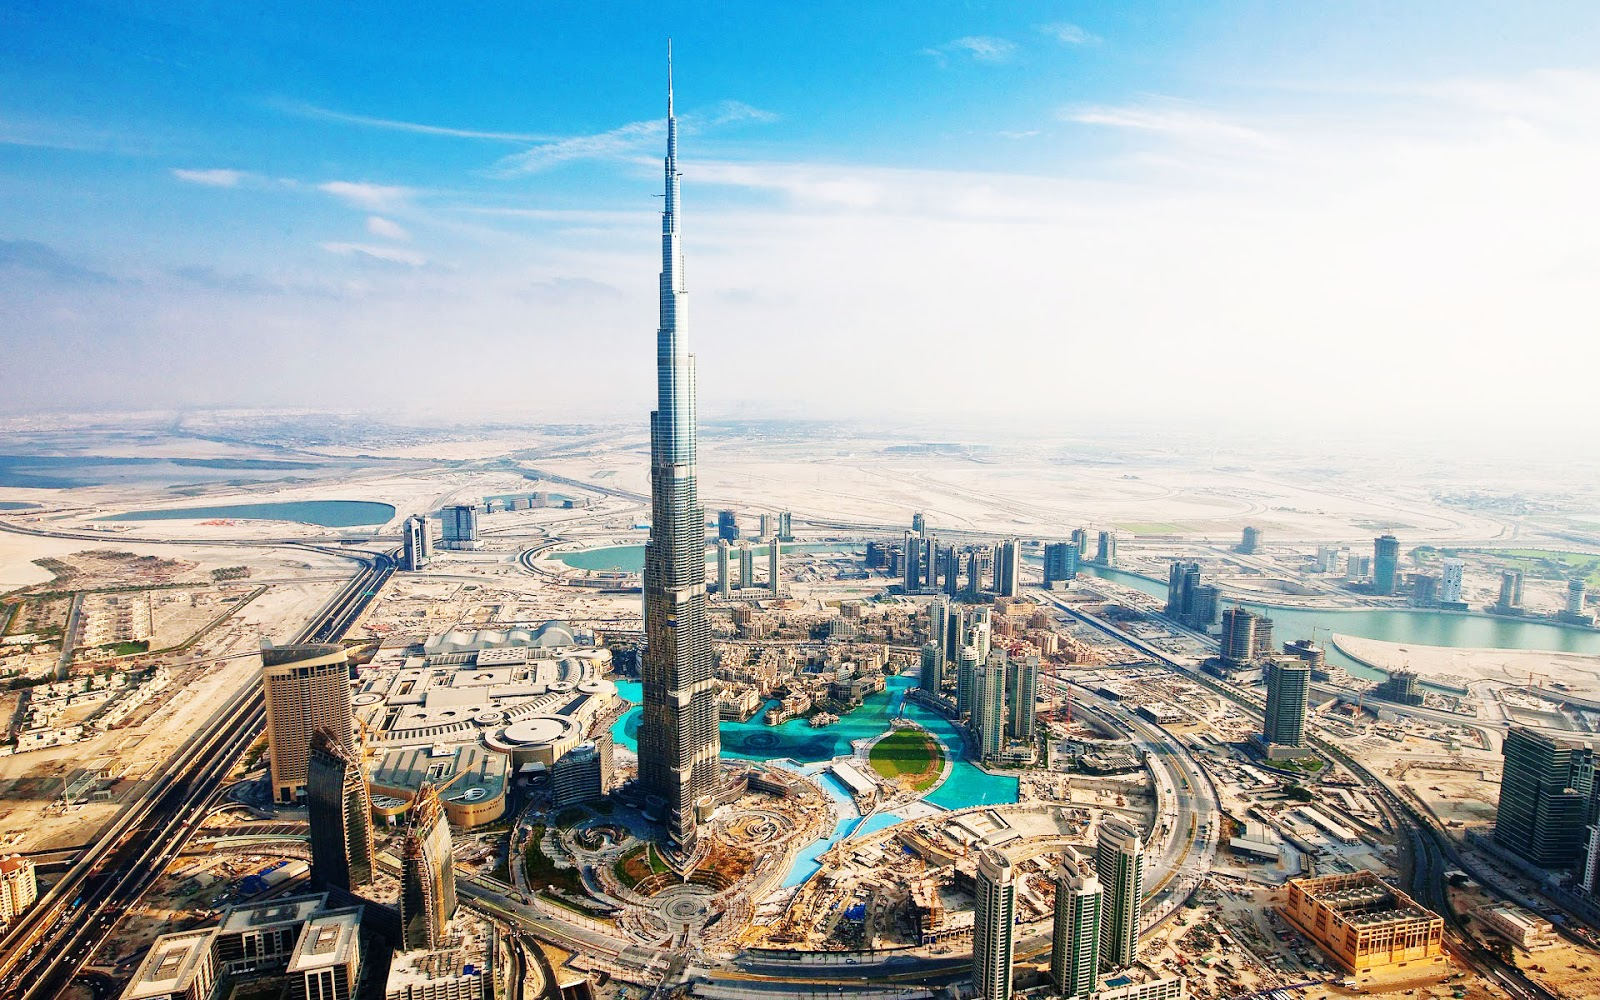 Dubai's real estate activity has picked up a momentum in 2017 as there has been a 14 per cent increase in the number of transactions compared to the previous year.